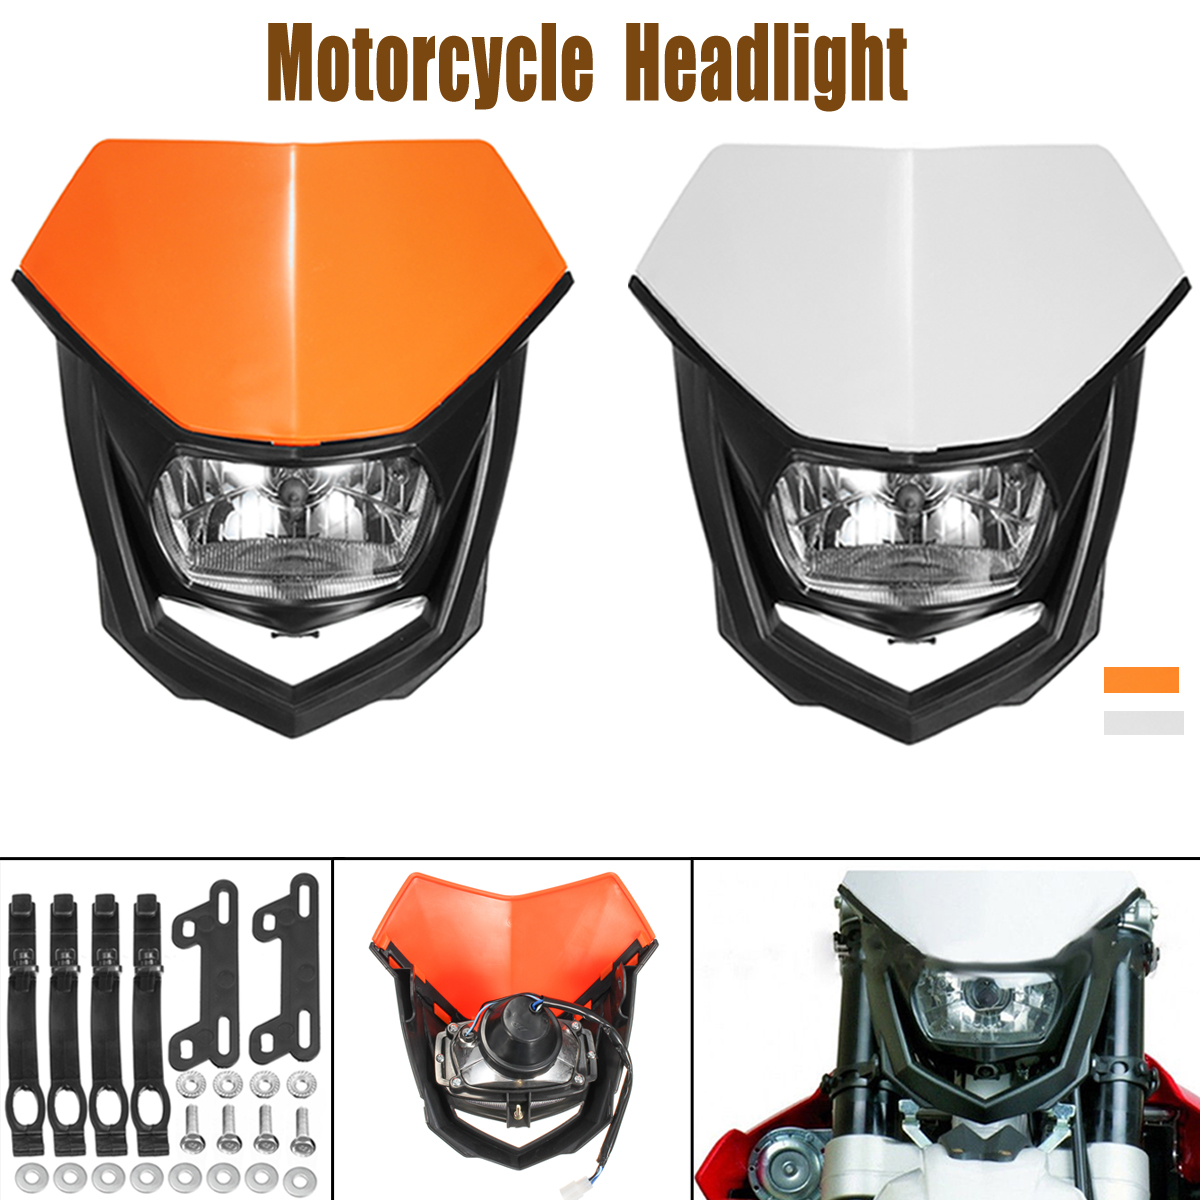 1x 12V H4 <font><b>Universal</b></font> Motorcycle <font><b>Headlight</b></font> Bulbs Headlamp <font><b>Dirt</b></font> <font><b>Bike</b></font> Motorcycle Accessories image